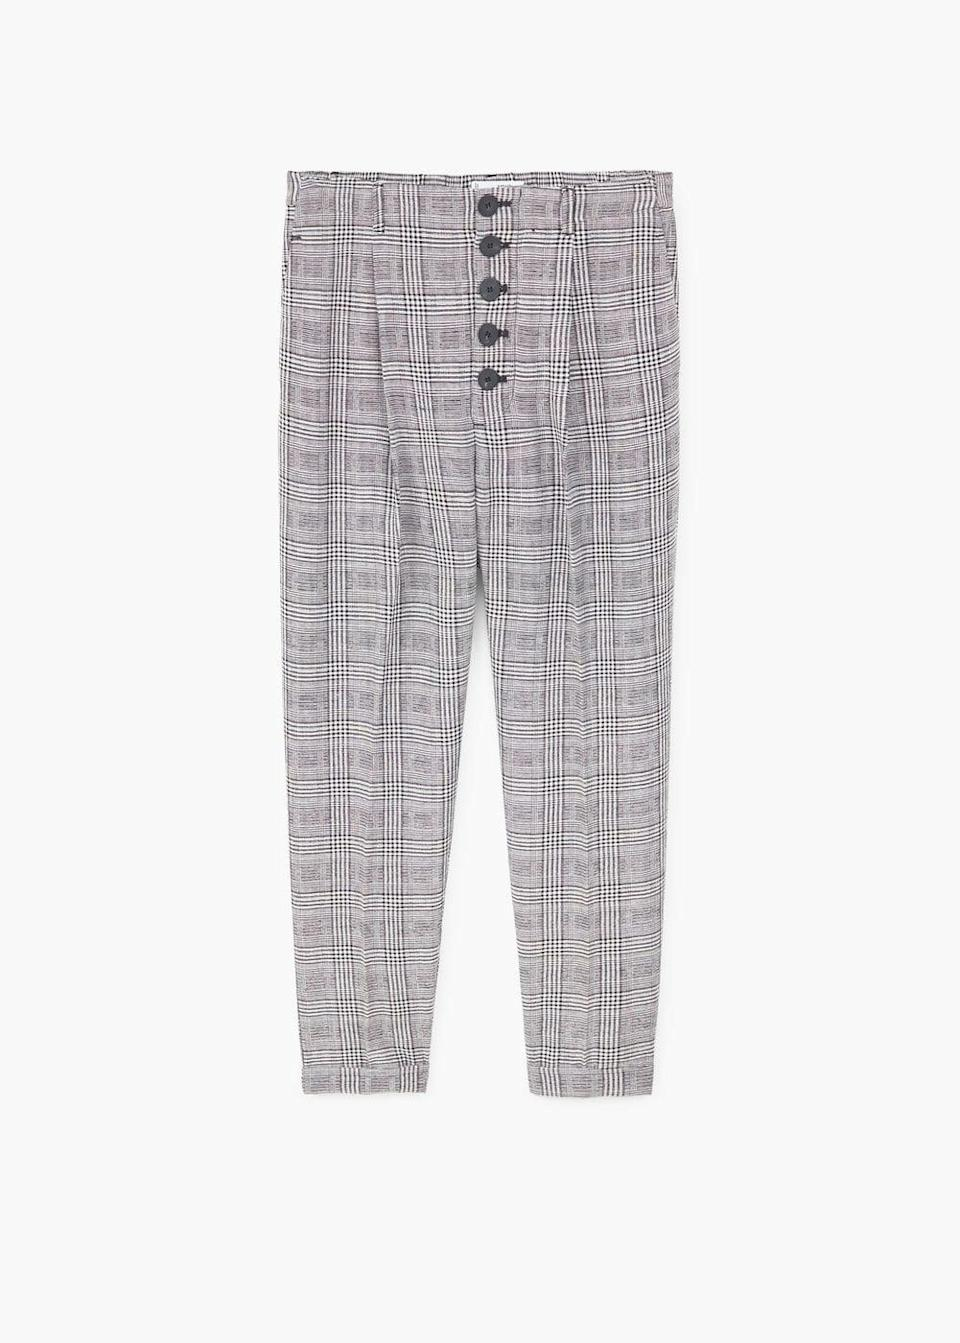 """<p>You heard it hear first. Make sure to shop the two-piece before the fash pack beat you to it. Finish with kitten heels.<br><br><em><a rel=""""nofollow noopener"""" href=""""https://shop.mango.com/gb/women/trousers-straight/prince-of-wales-trousers_11060776.html?c=99"""" target=""""_blank"""" data-ylk=""""slk:Mango"""" class=""""link rapid-noclick-resp"""">Mango</a>, £35.99</em> </p>"""